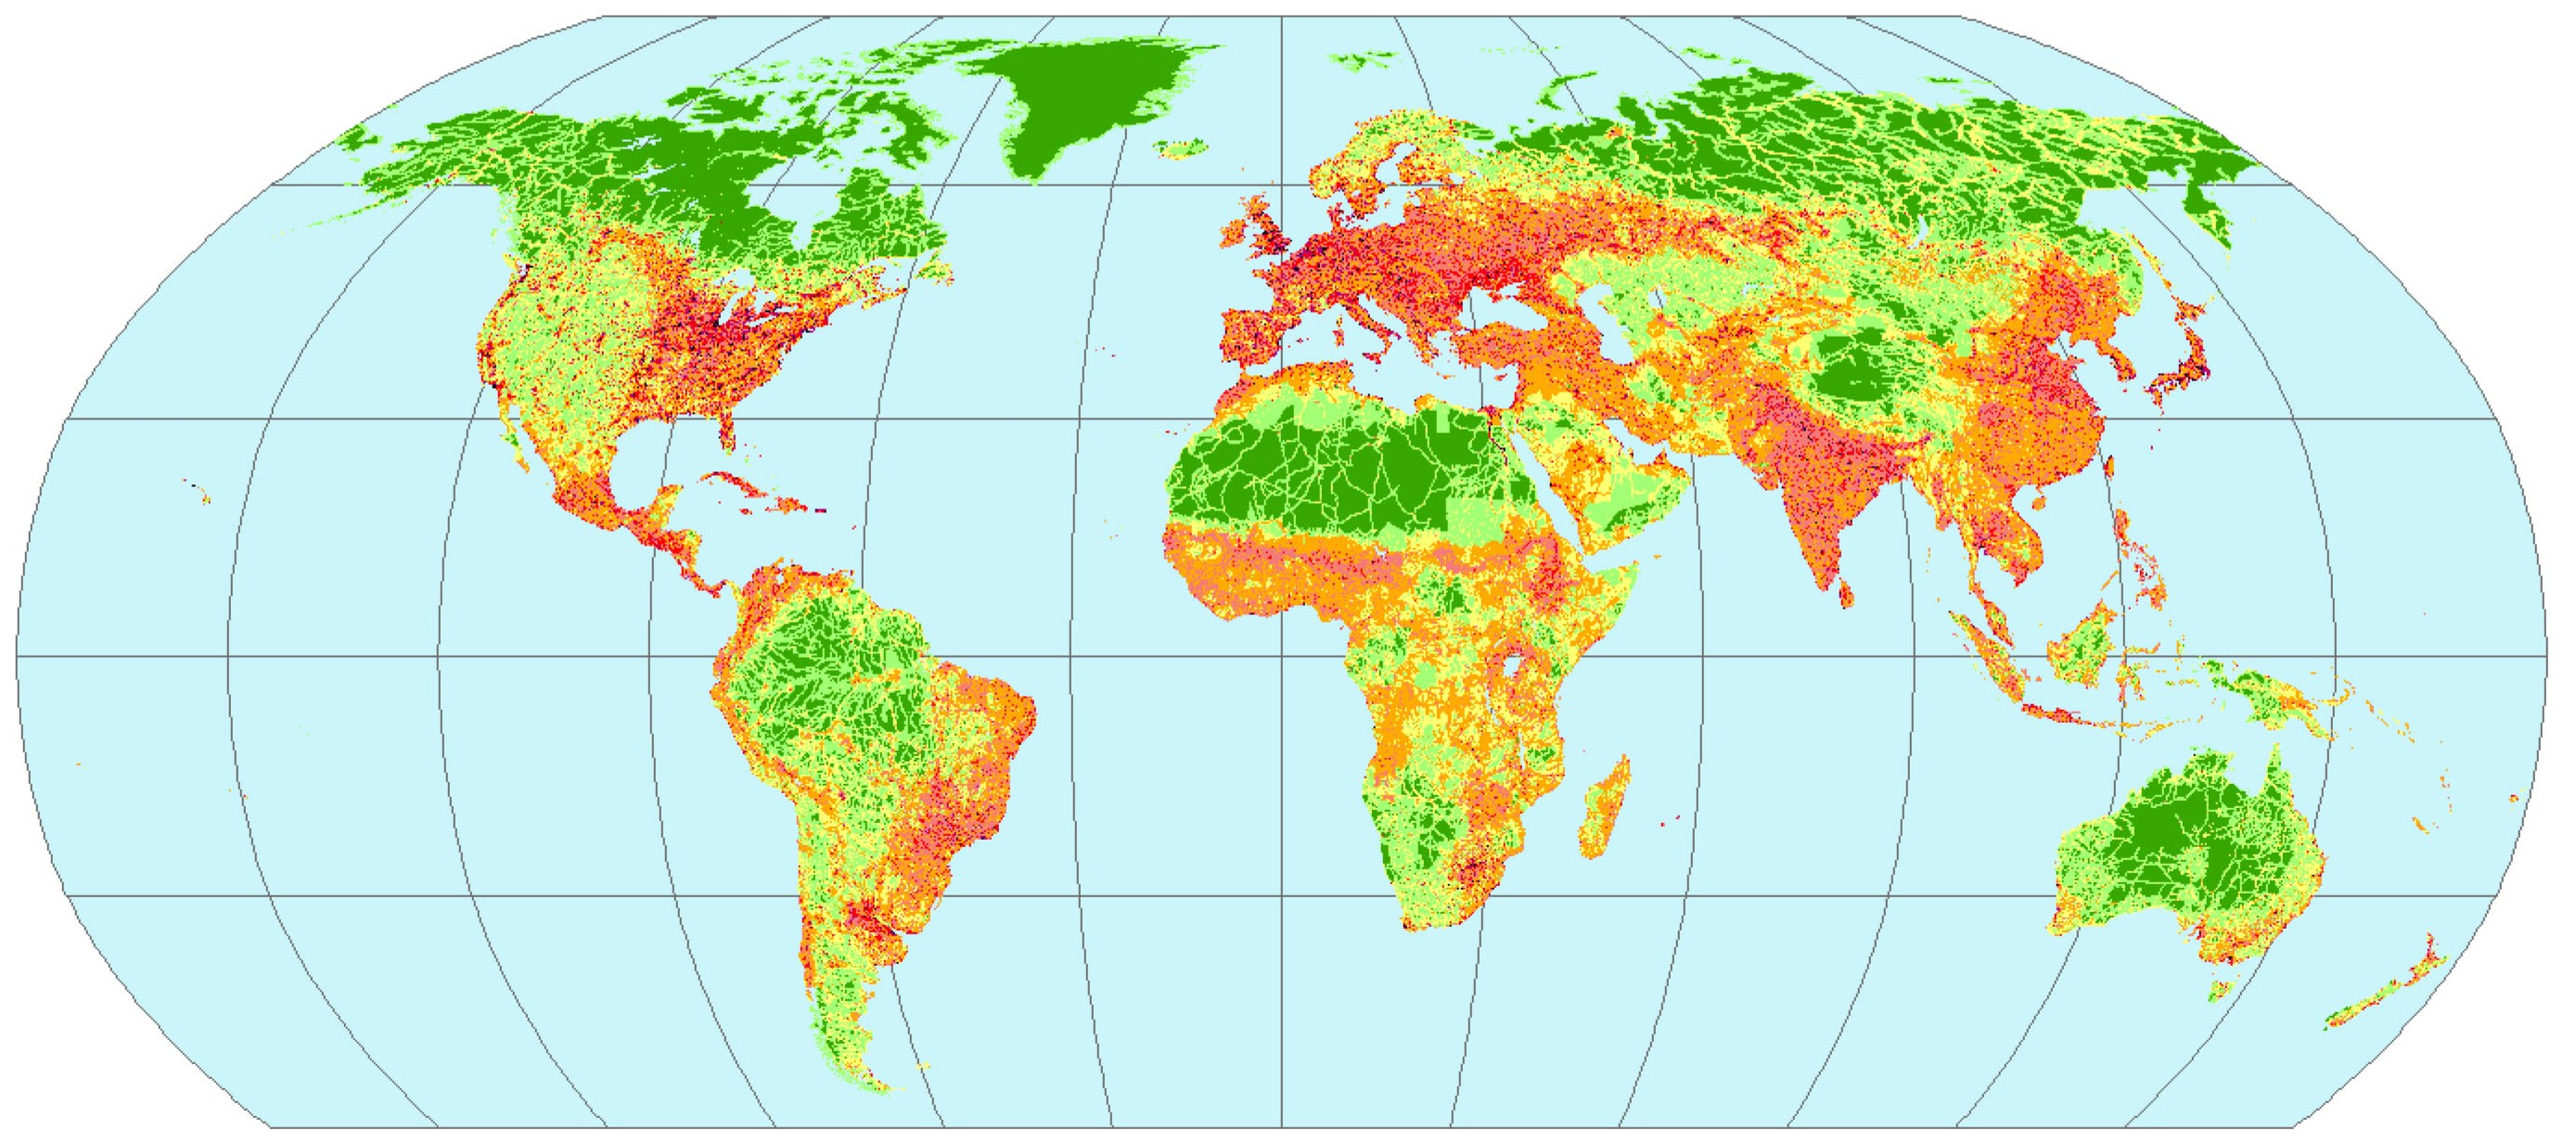 Ecological footprints science for understanding the peoples national geographic national geo ed resource national geo food comparison calc foot pring map 1960 2050 ecologicalfootprintatlas2010 gumiabroncs Gallery